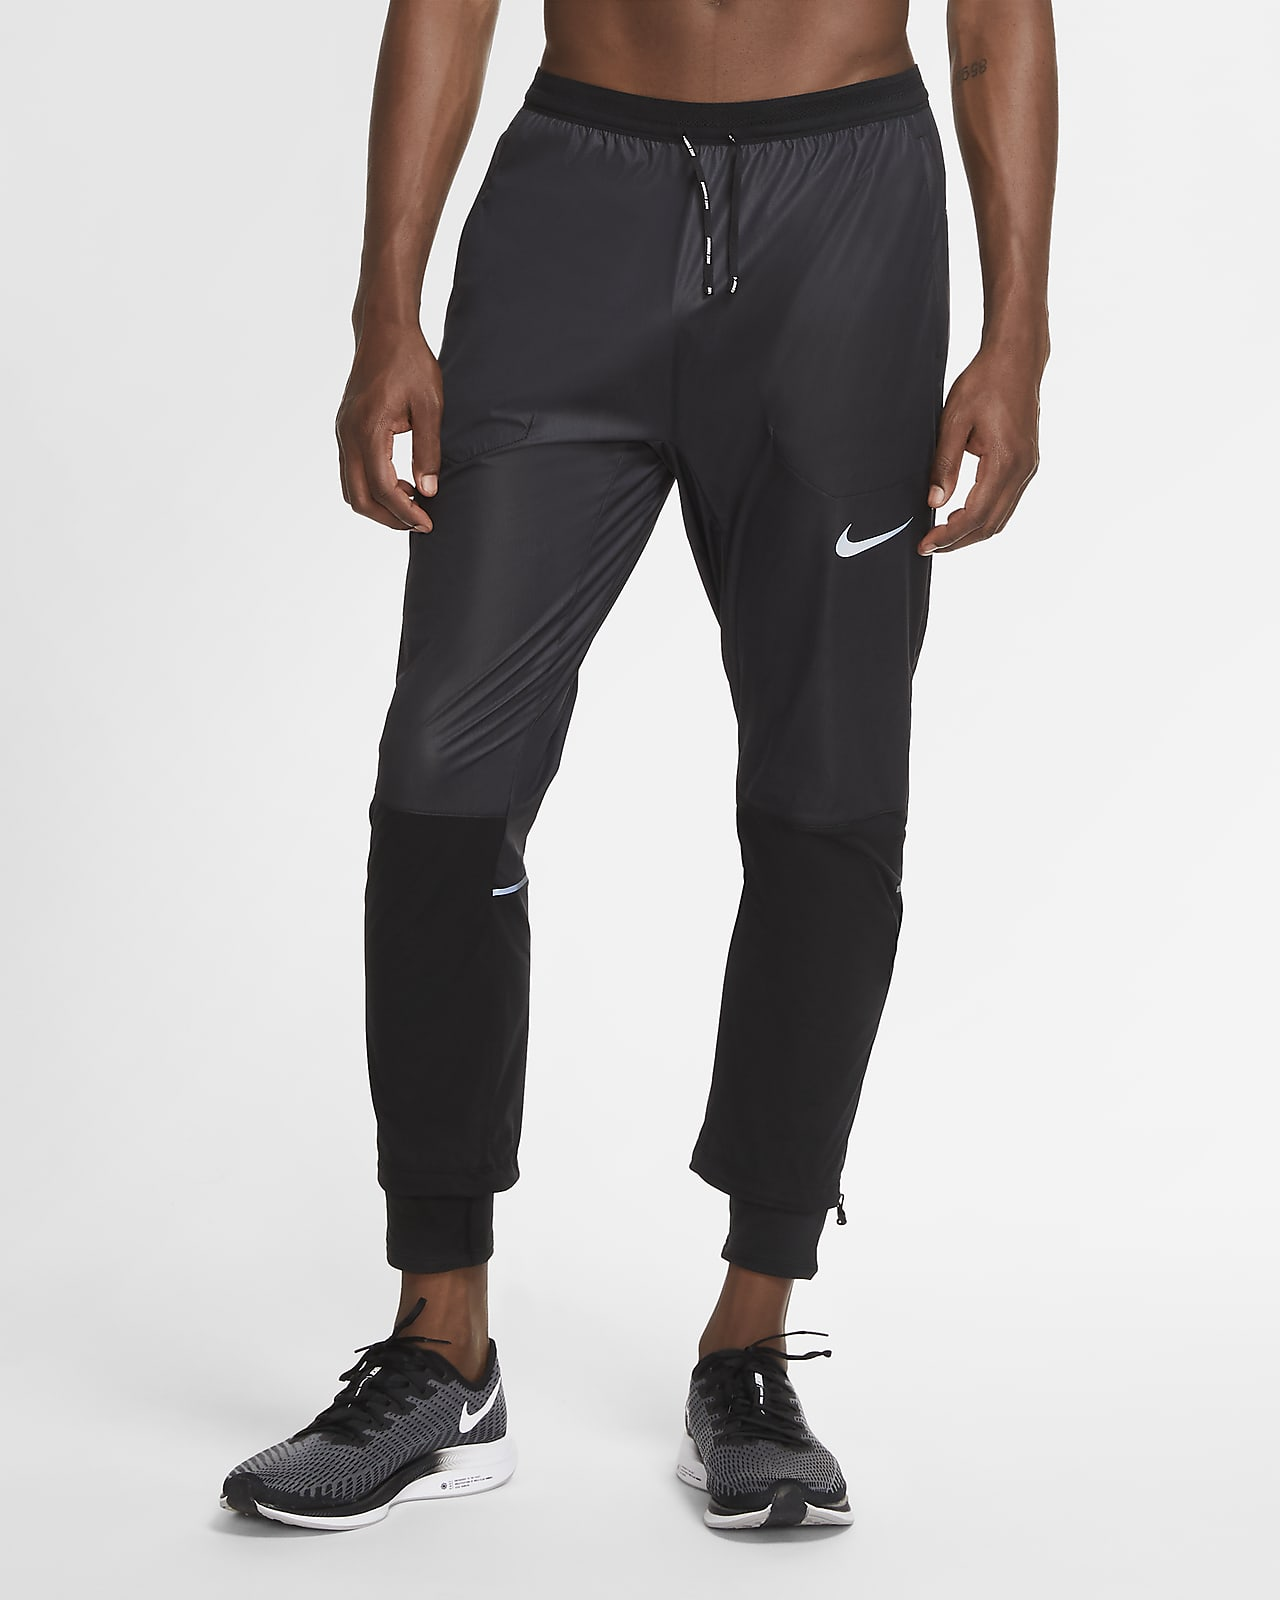 Nike Swift Shield Herren-Laufhose